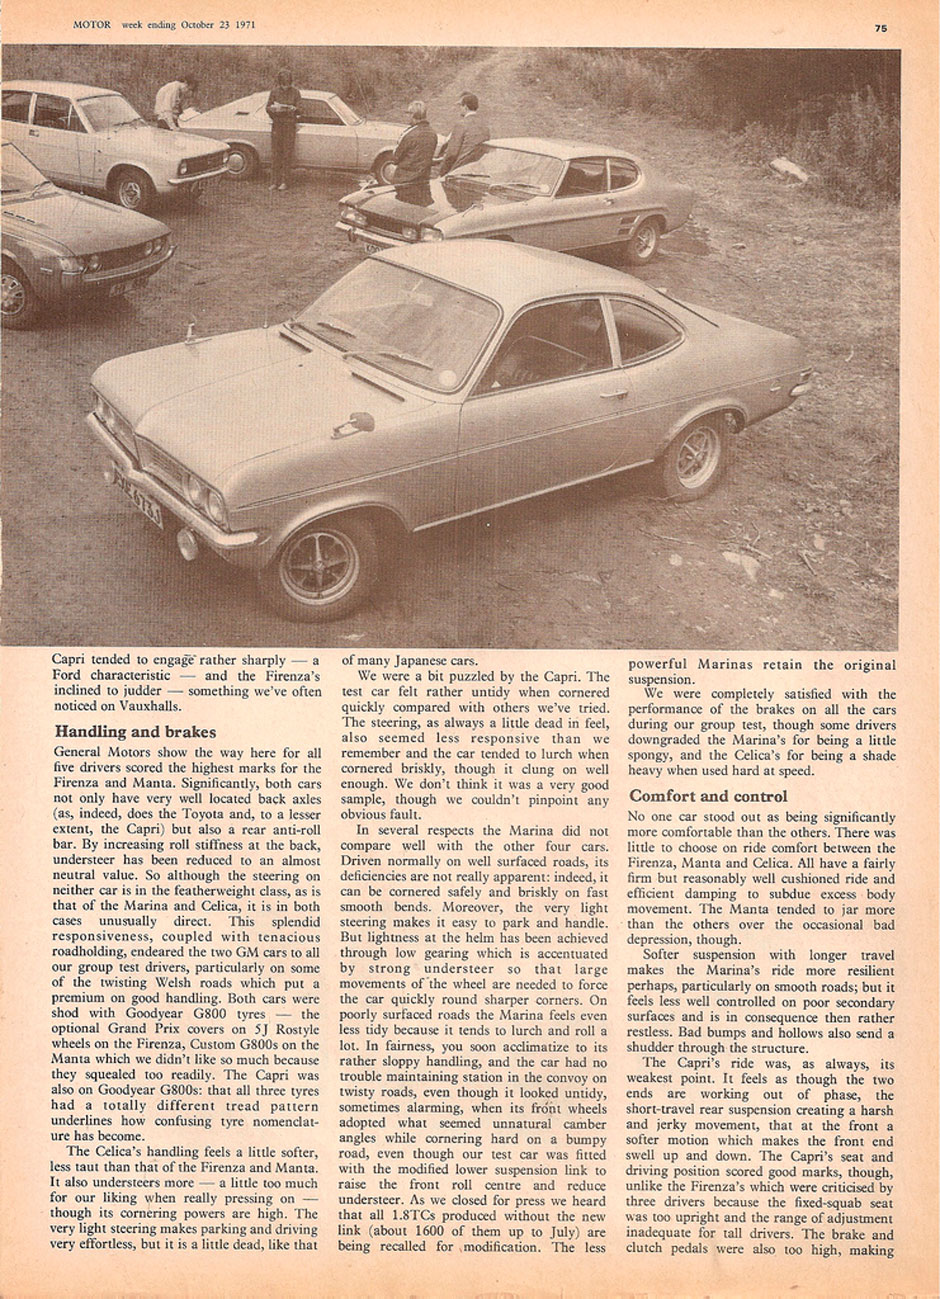 Ford Capri 2000 GT, Opel Manta 1.6S, Vauxhall Fierenza 2000, Morris Marina 1.8 TC Coupe, Toyota Celica